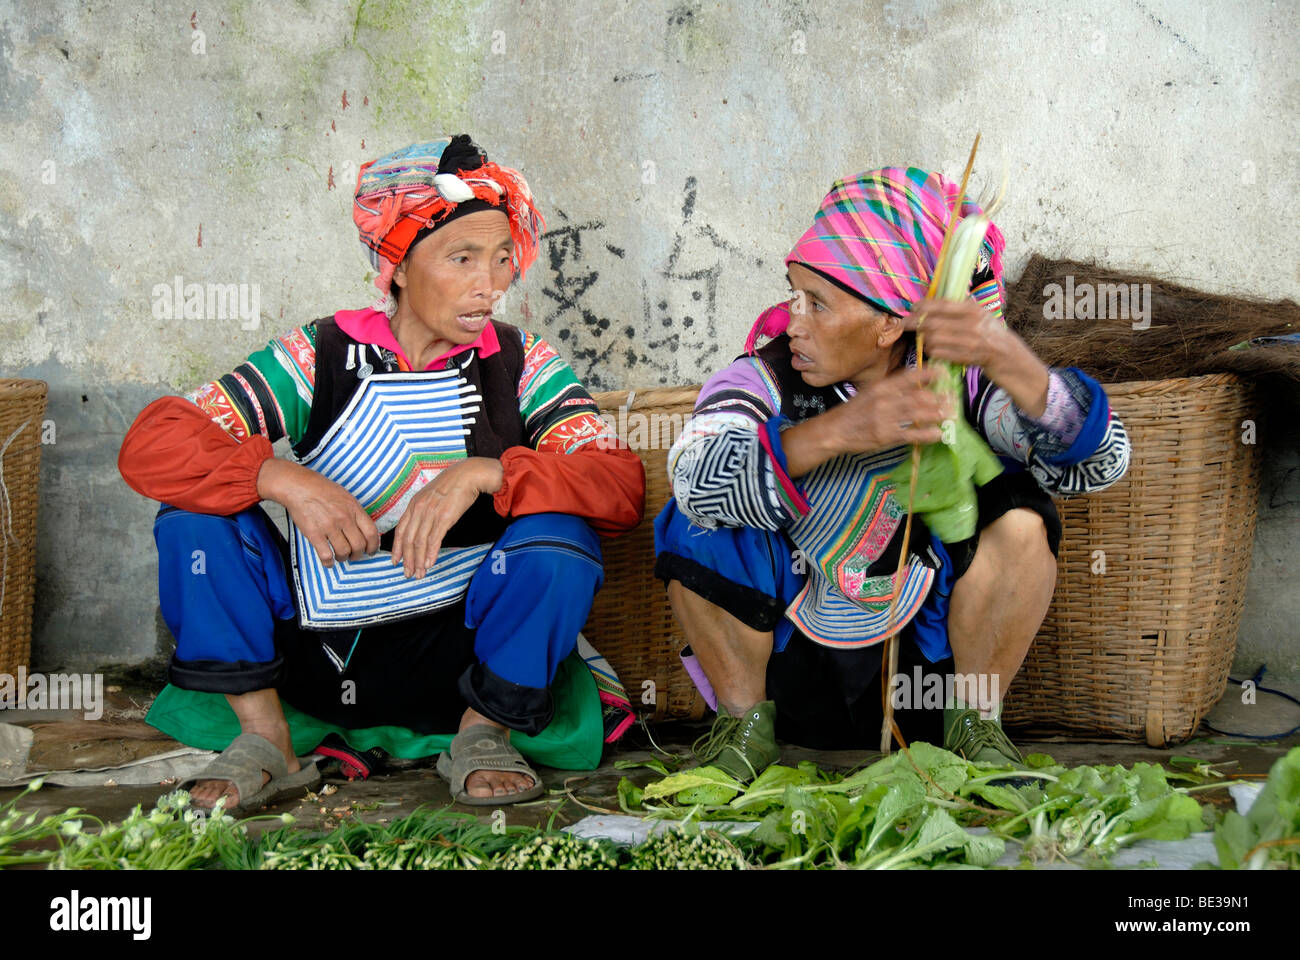 Ethnology, two market women of the Yi ethnic group squat deep in conversation, colorful clothes, Xinji, Yuanyang, - Stock Image